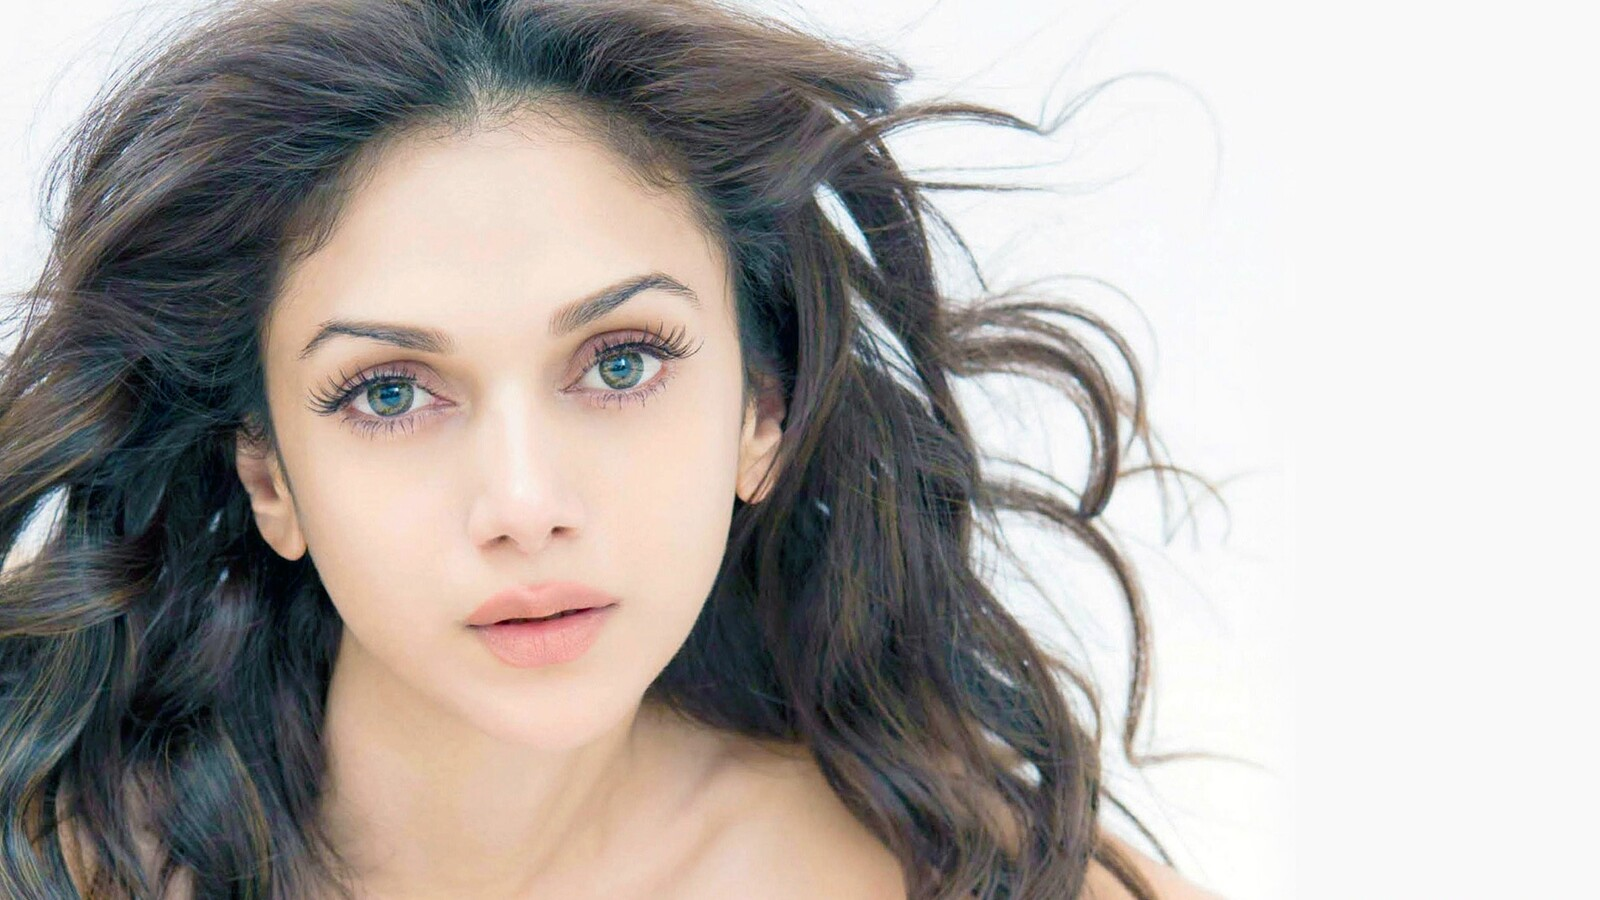 1600x900 aditi rao hydari 5 1600x900 resolution hd 4k for Aditi indian cuisine